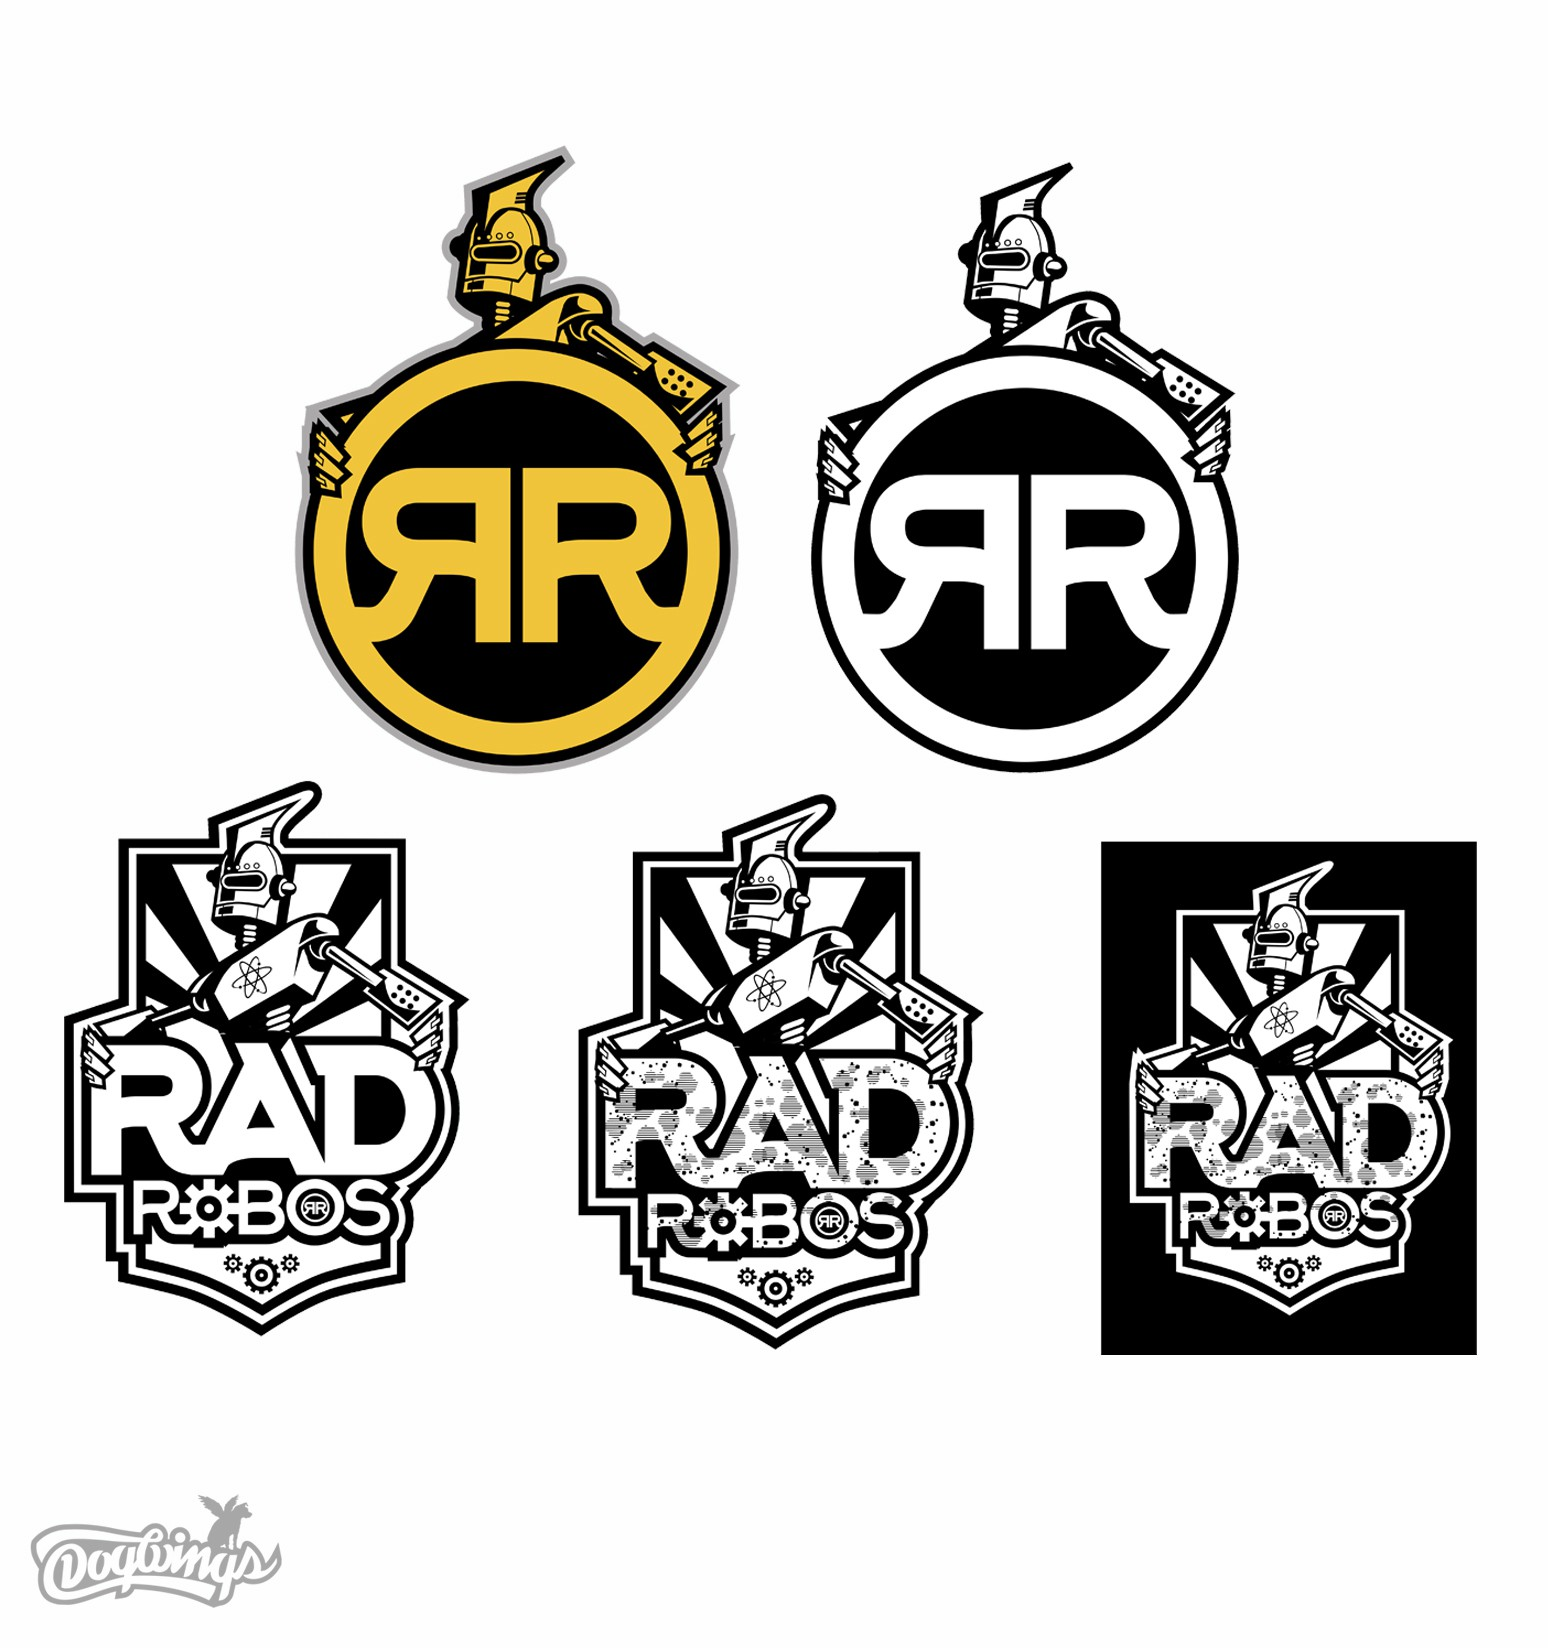 Rad Robos -- Robotics with Passion and Flare